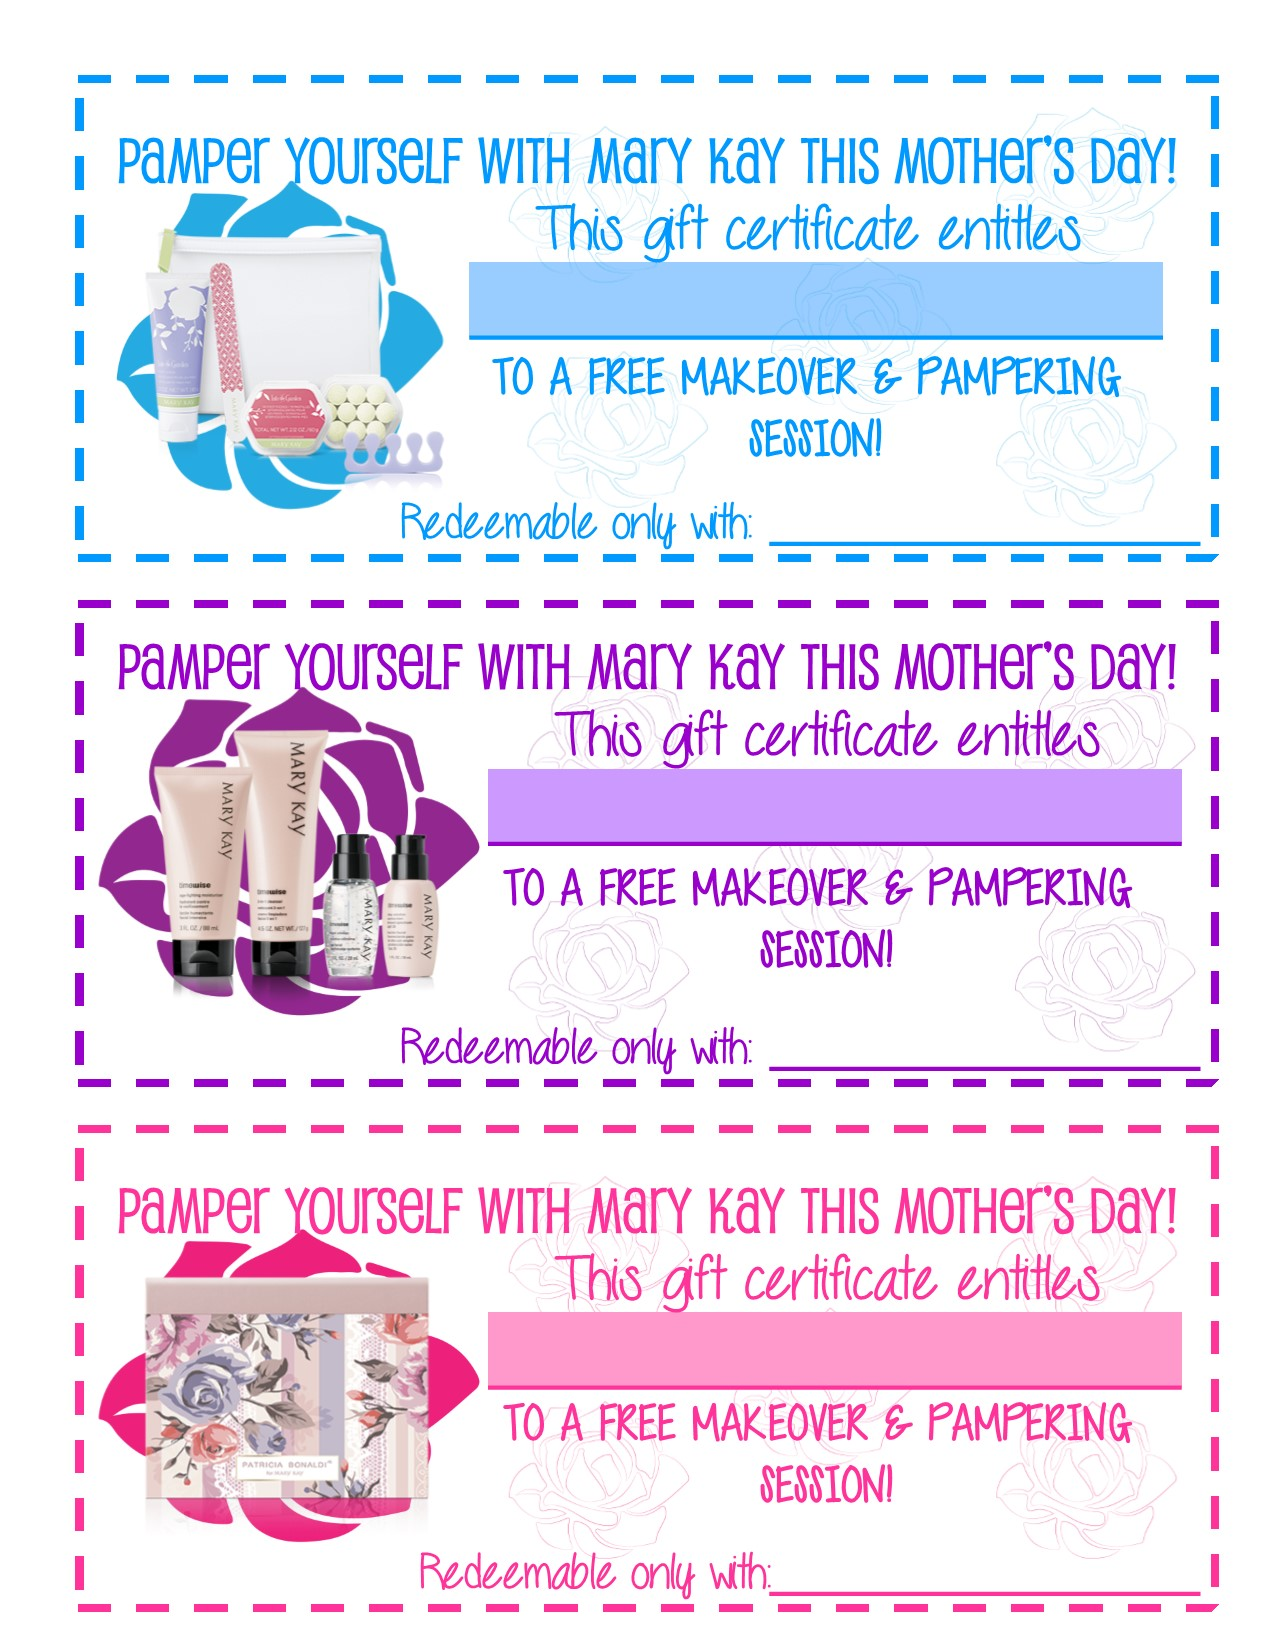 Freebie Mothers Day Gift Certificates To Promote Pampering Sessions